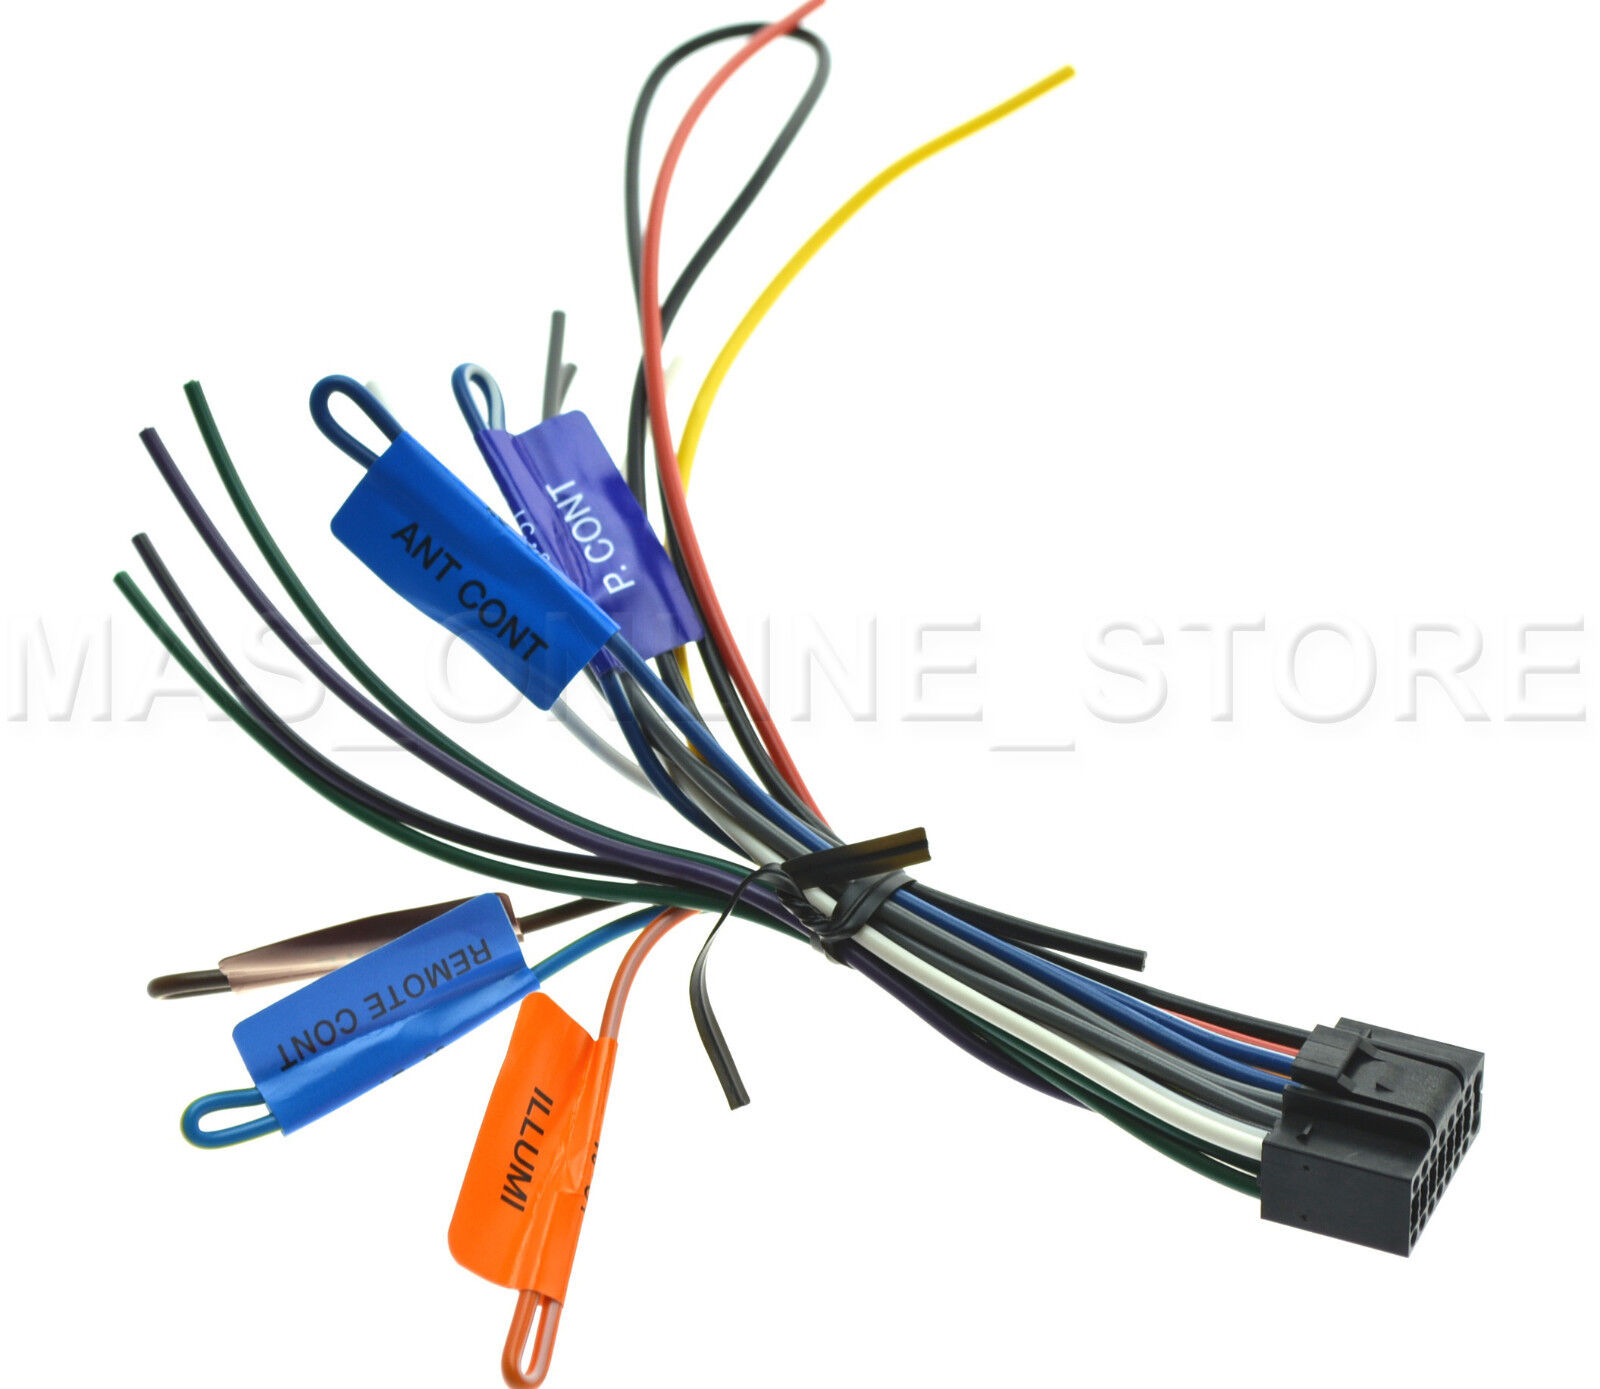 Harness kenwood diagram wiring dnx hd stereo